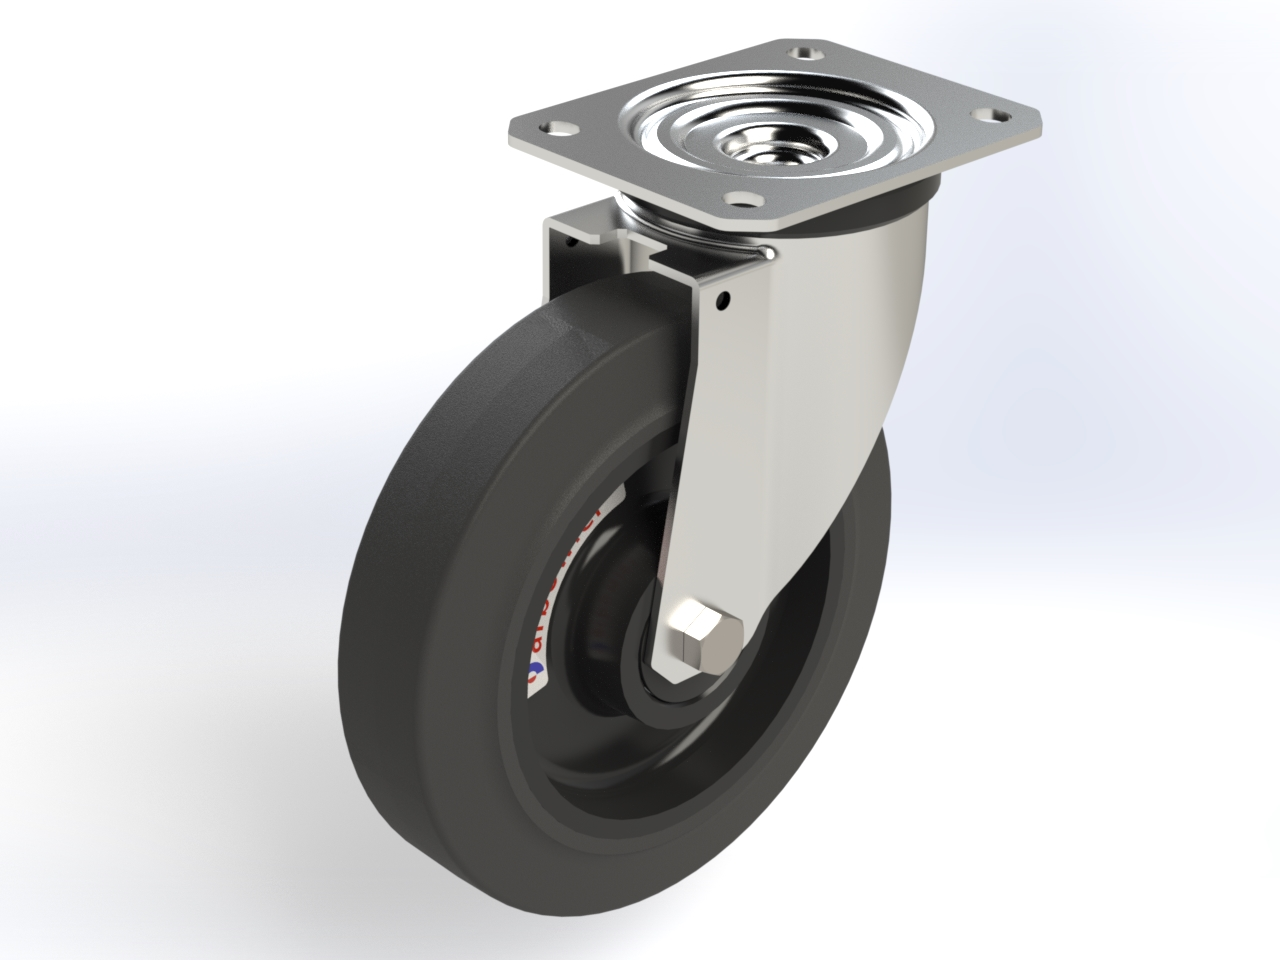 Series LA (Arbo) ball bearing, Swivel castors M22 with plate fitting